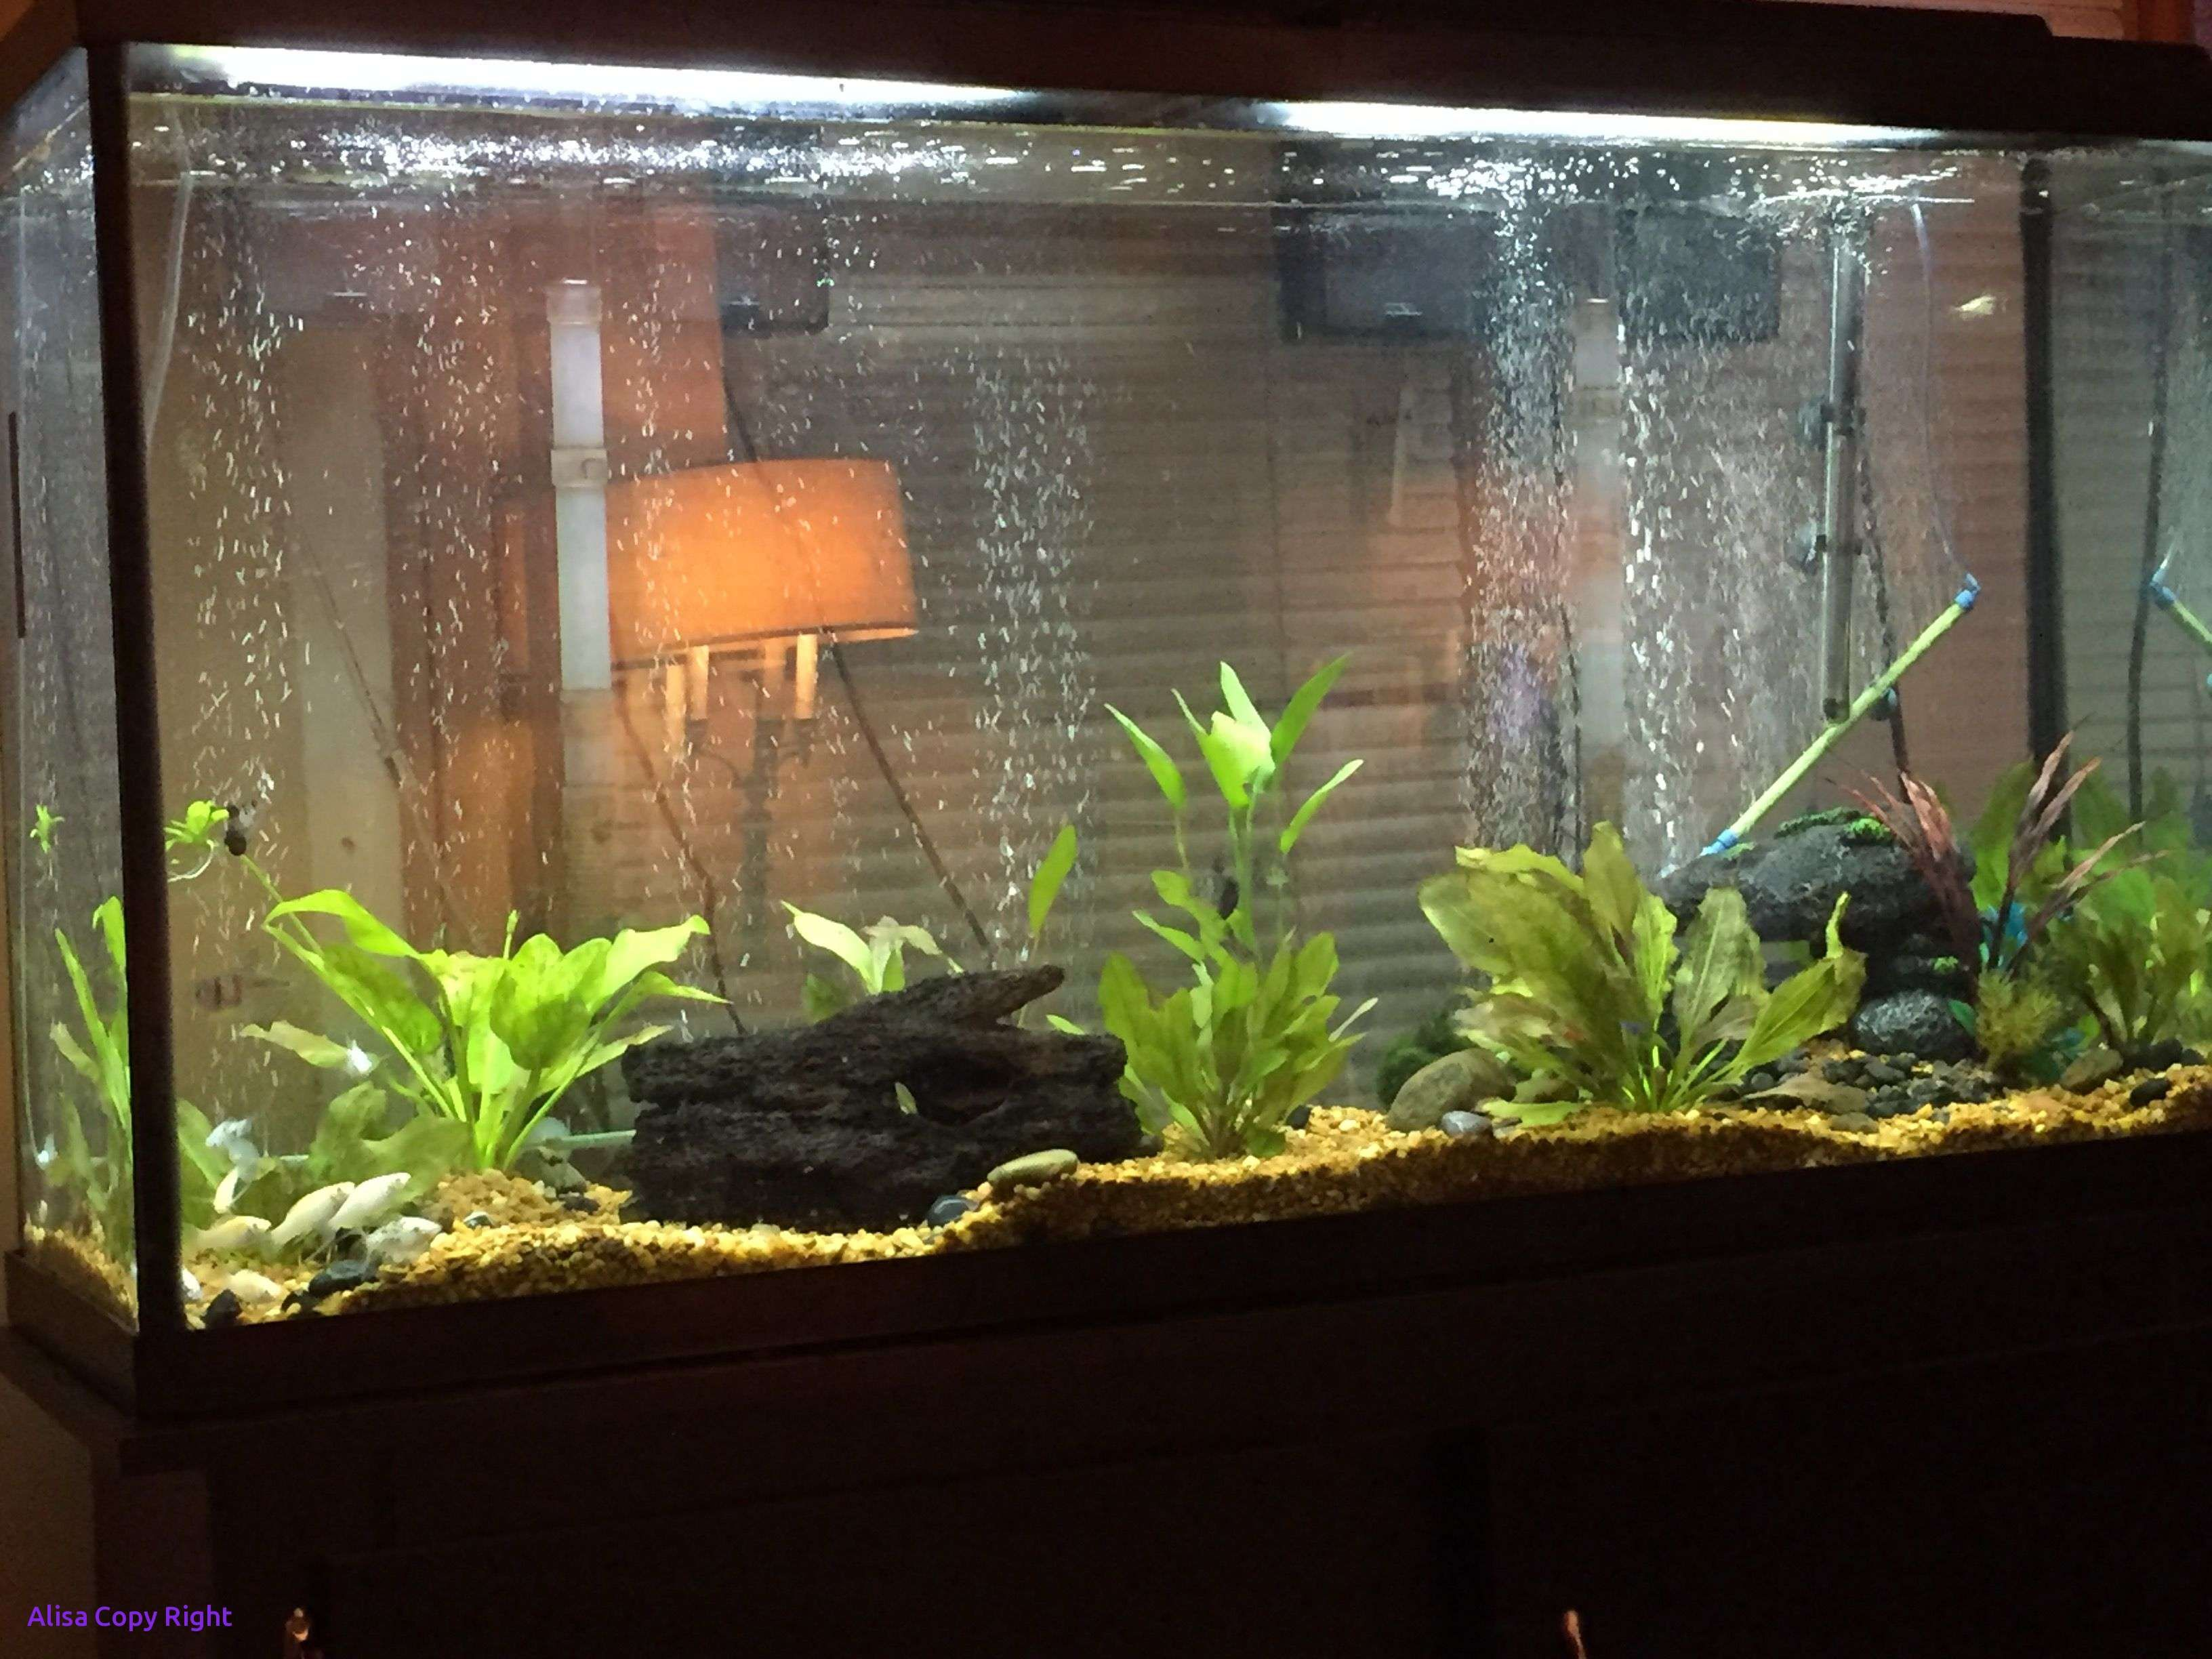 Contemporary Fish Tanks With Images Modern Fish Tank Diy Fish Tank Fish Tank